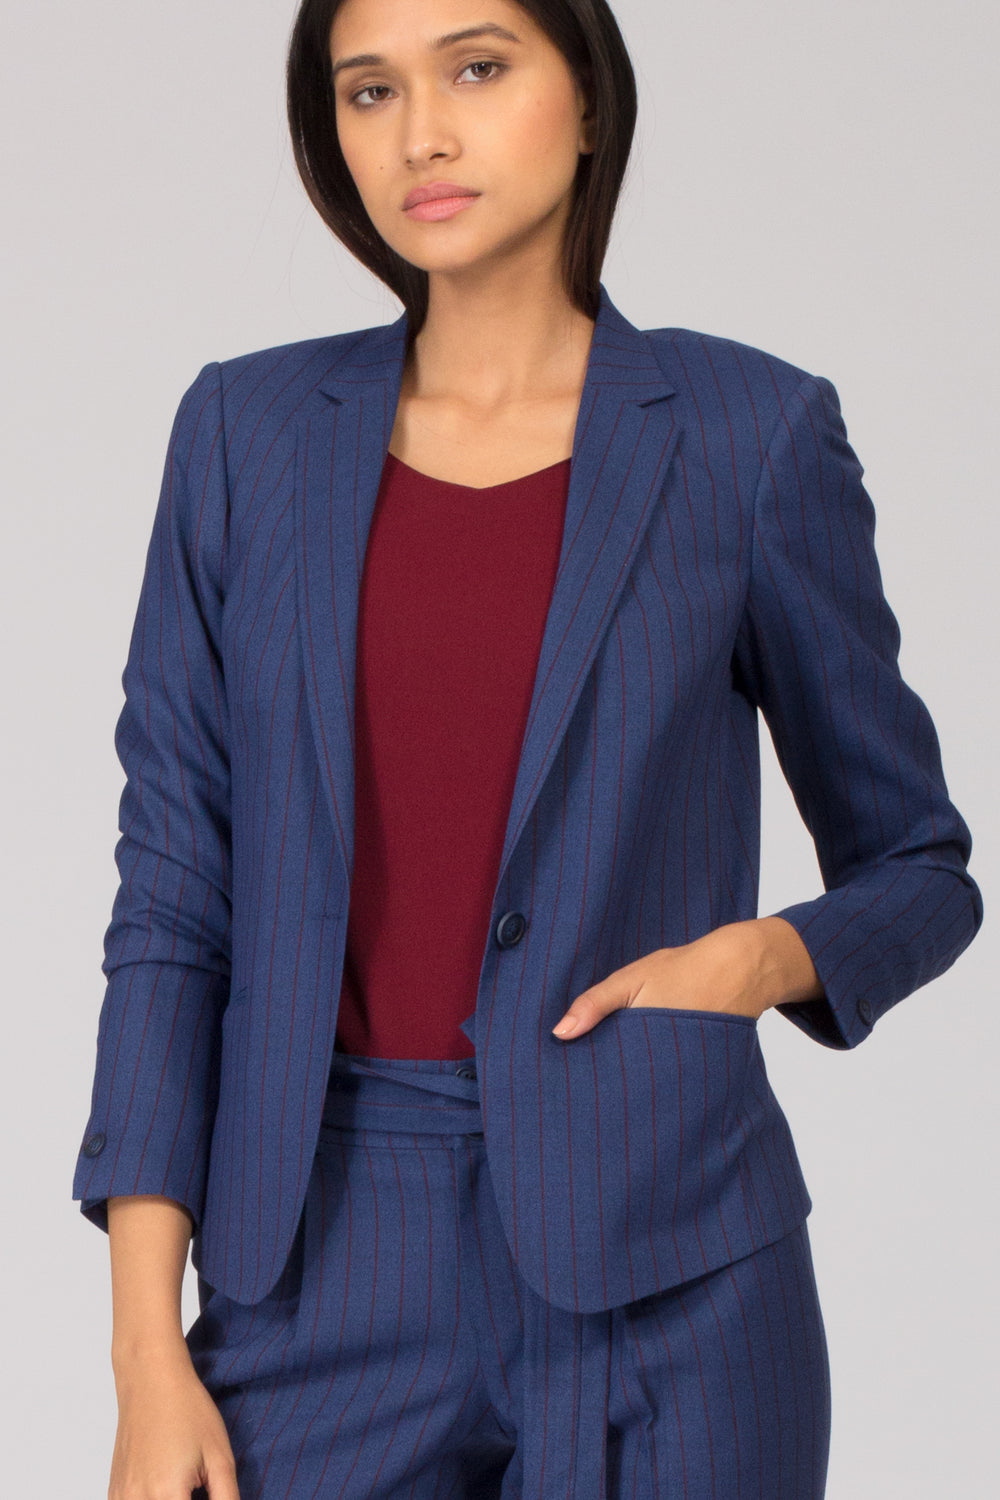 Blue Pinstripe Formal Blazer Pant Suits for Working Women. Shop for formal trousers, suits and workwear dresses at www.intermod.in